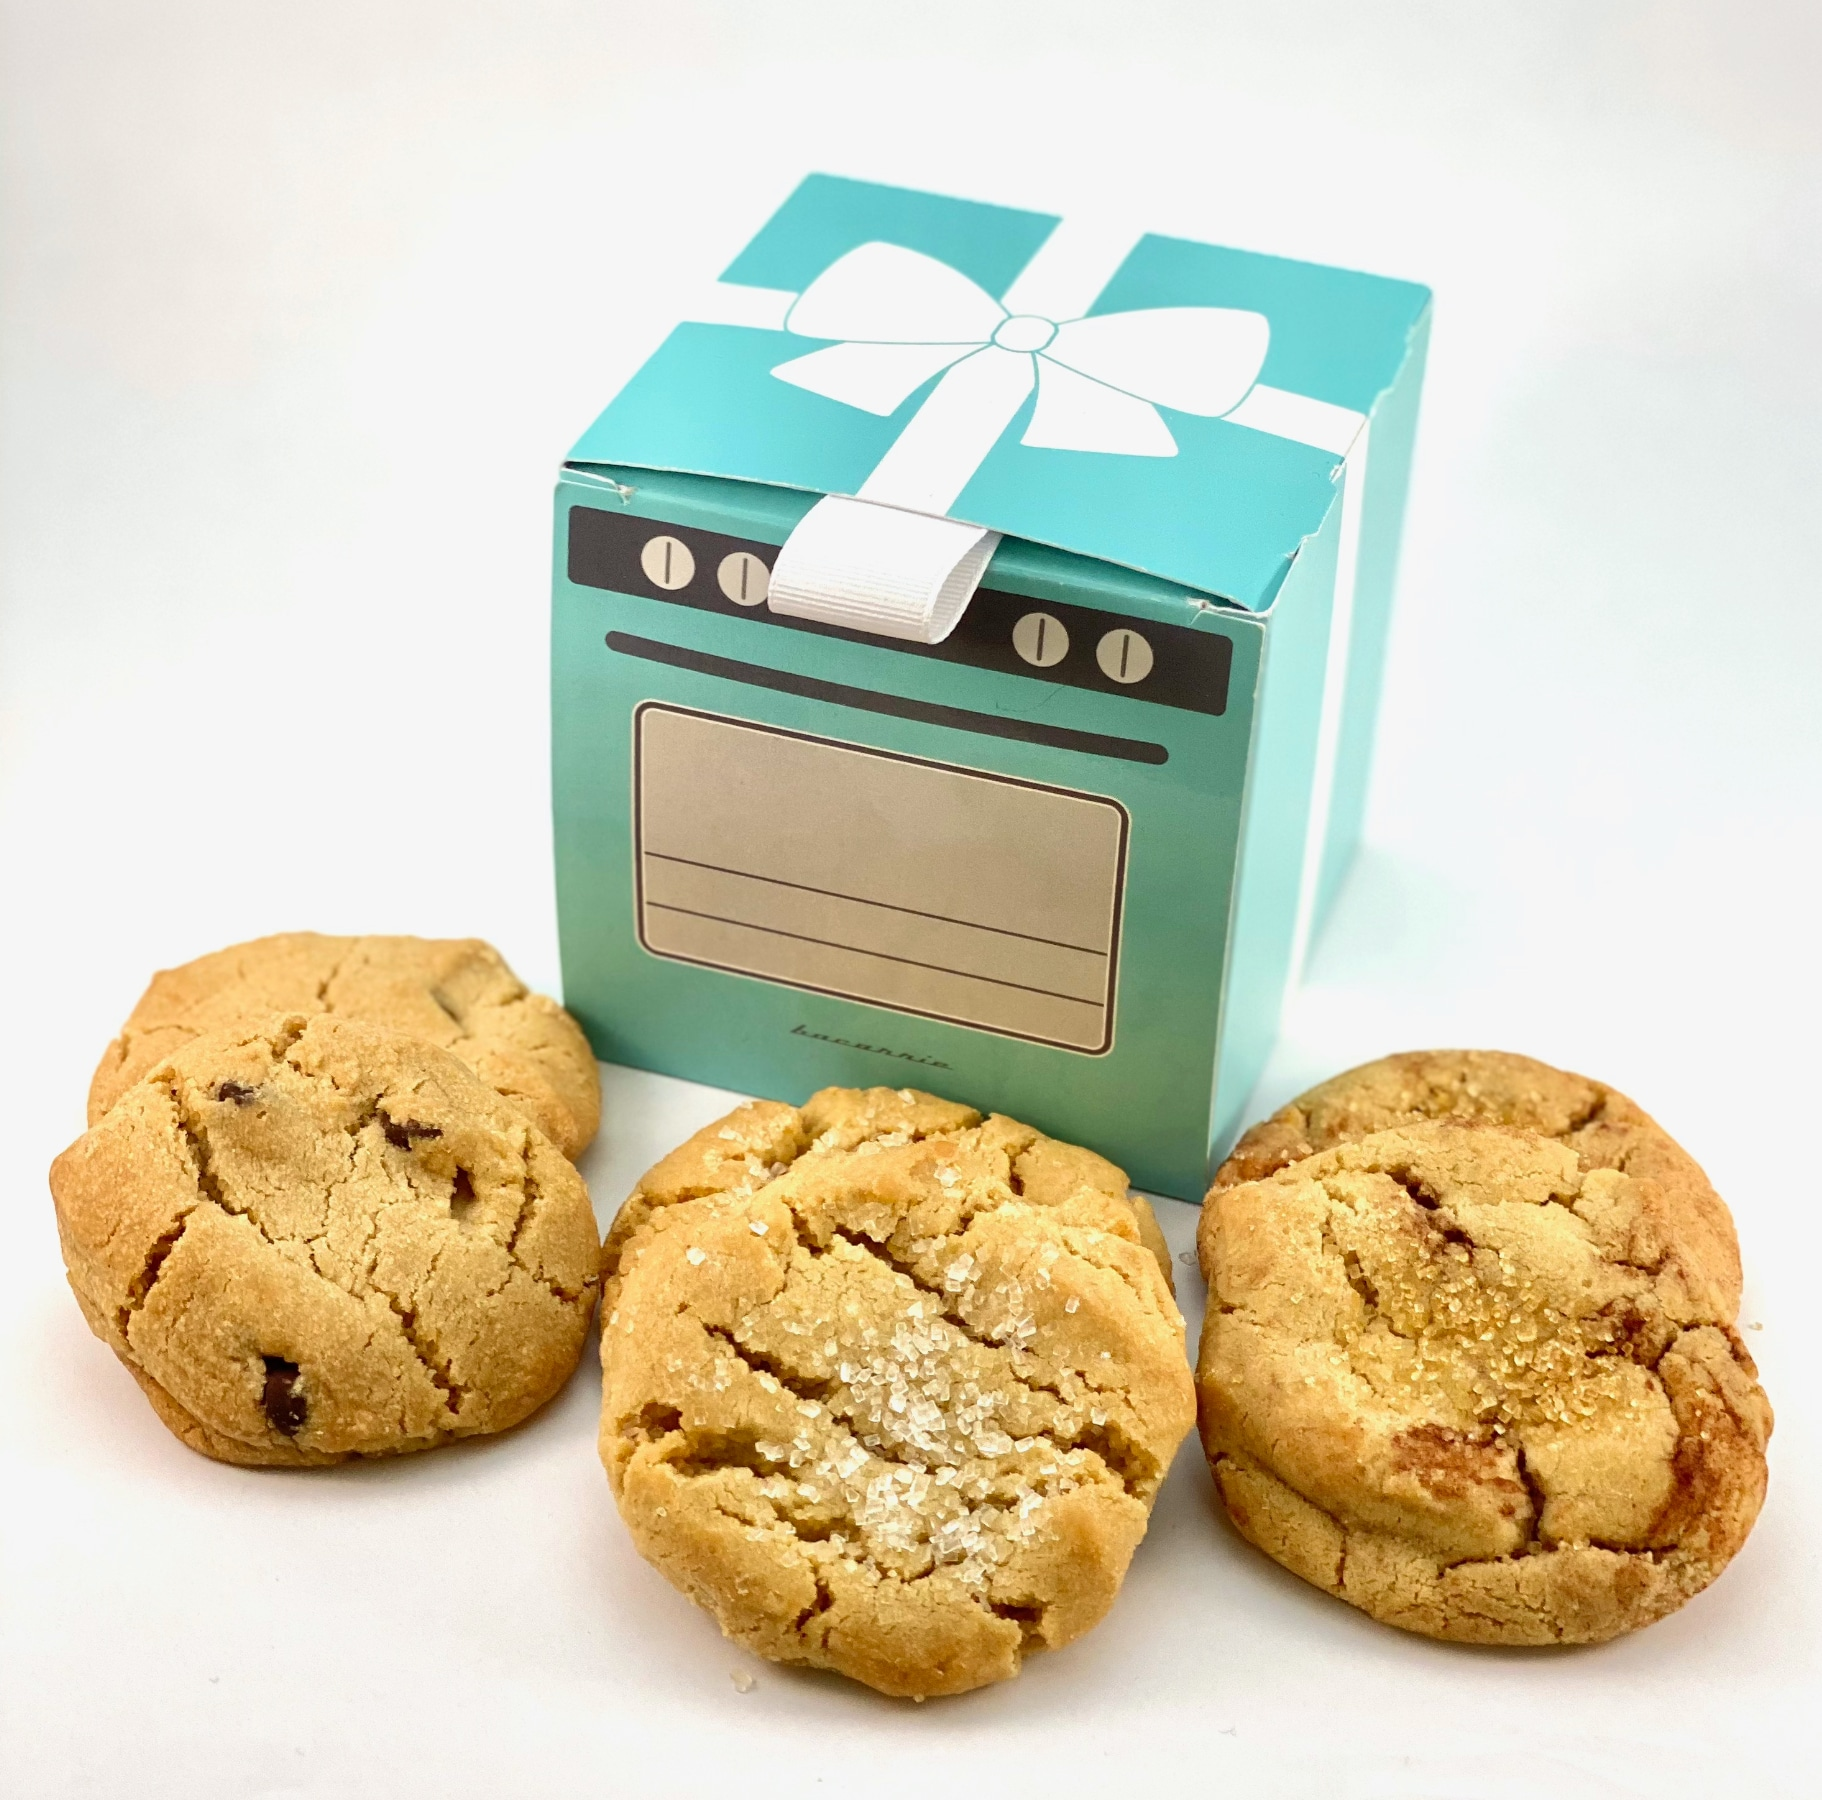 Six Artisanal Cookies in Tiffany Blue Box